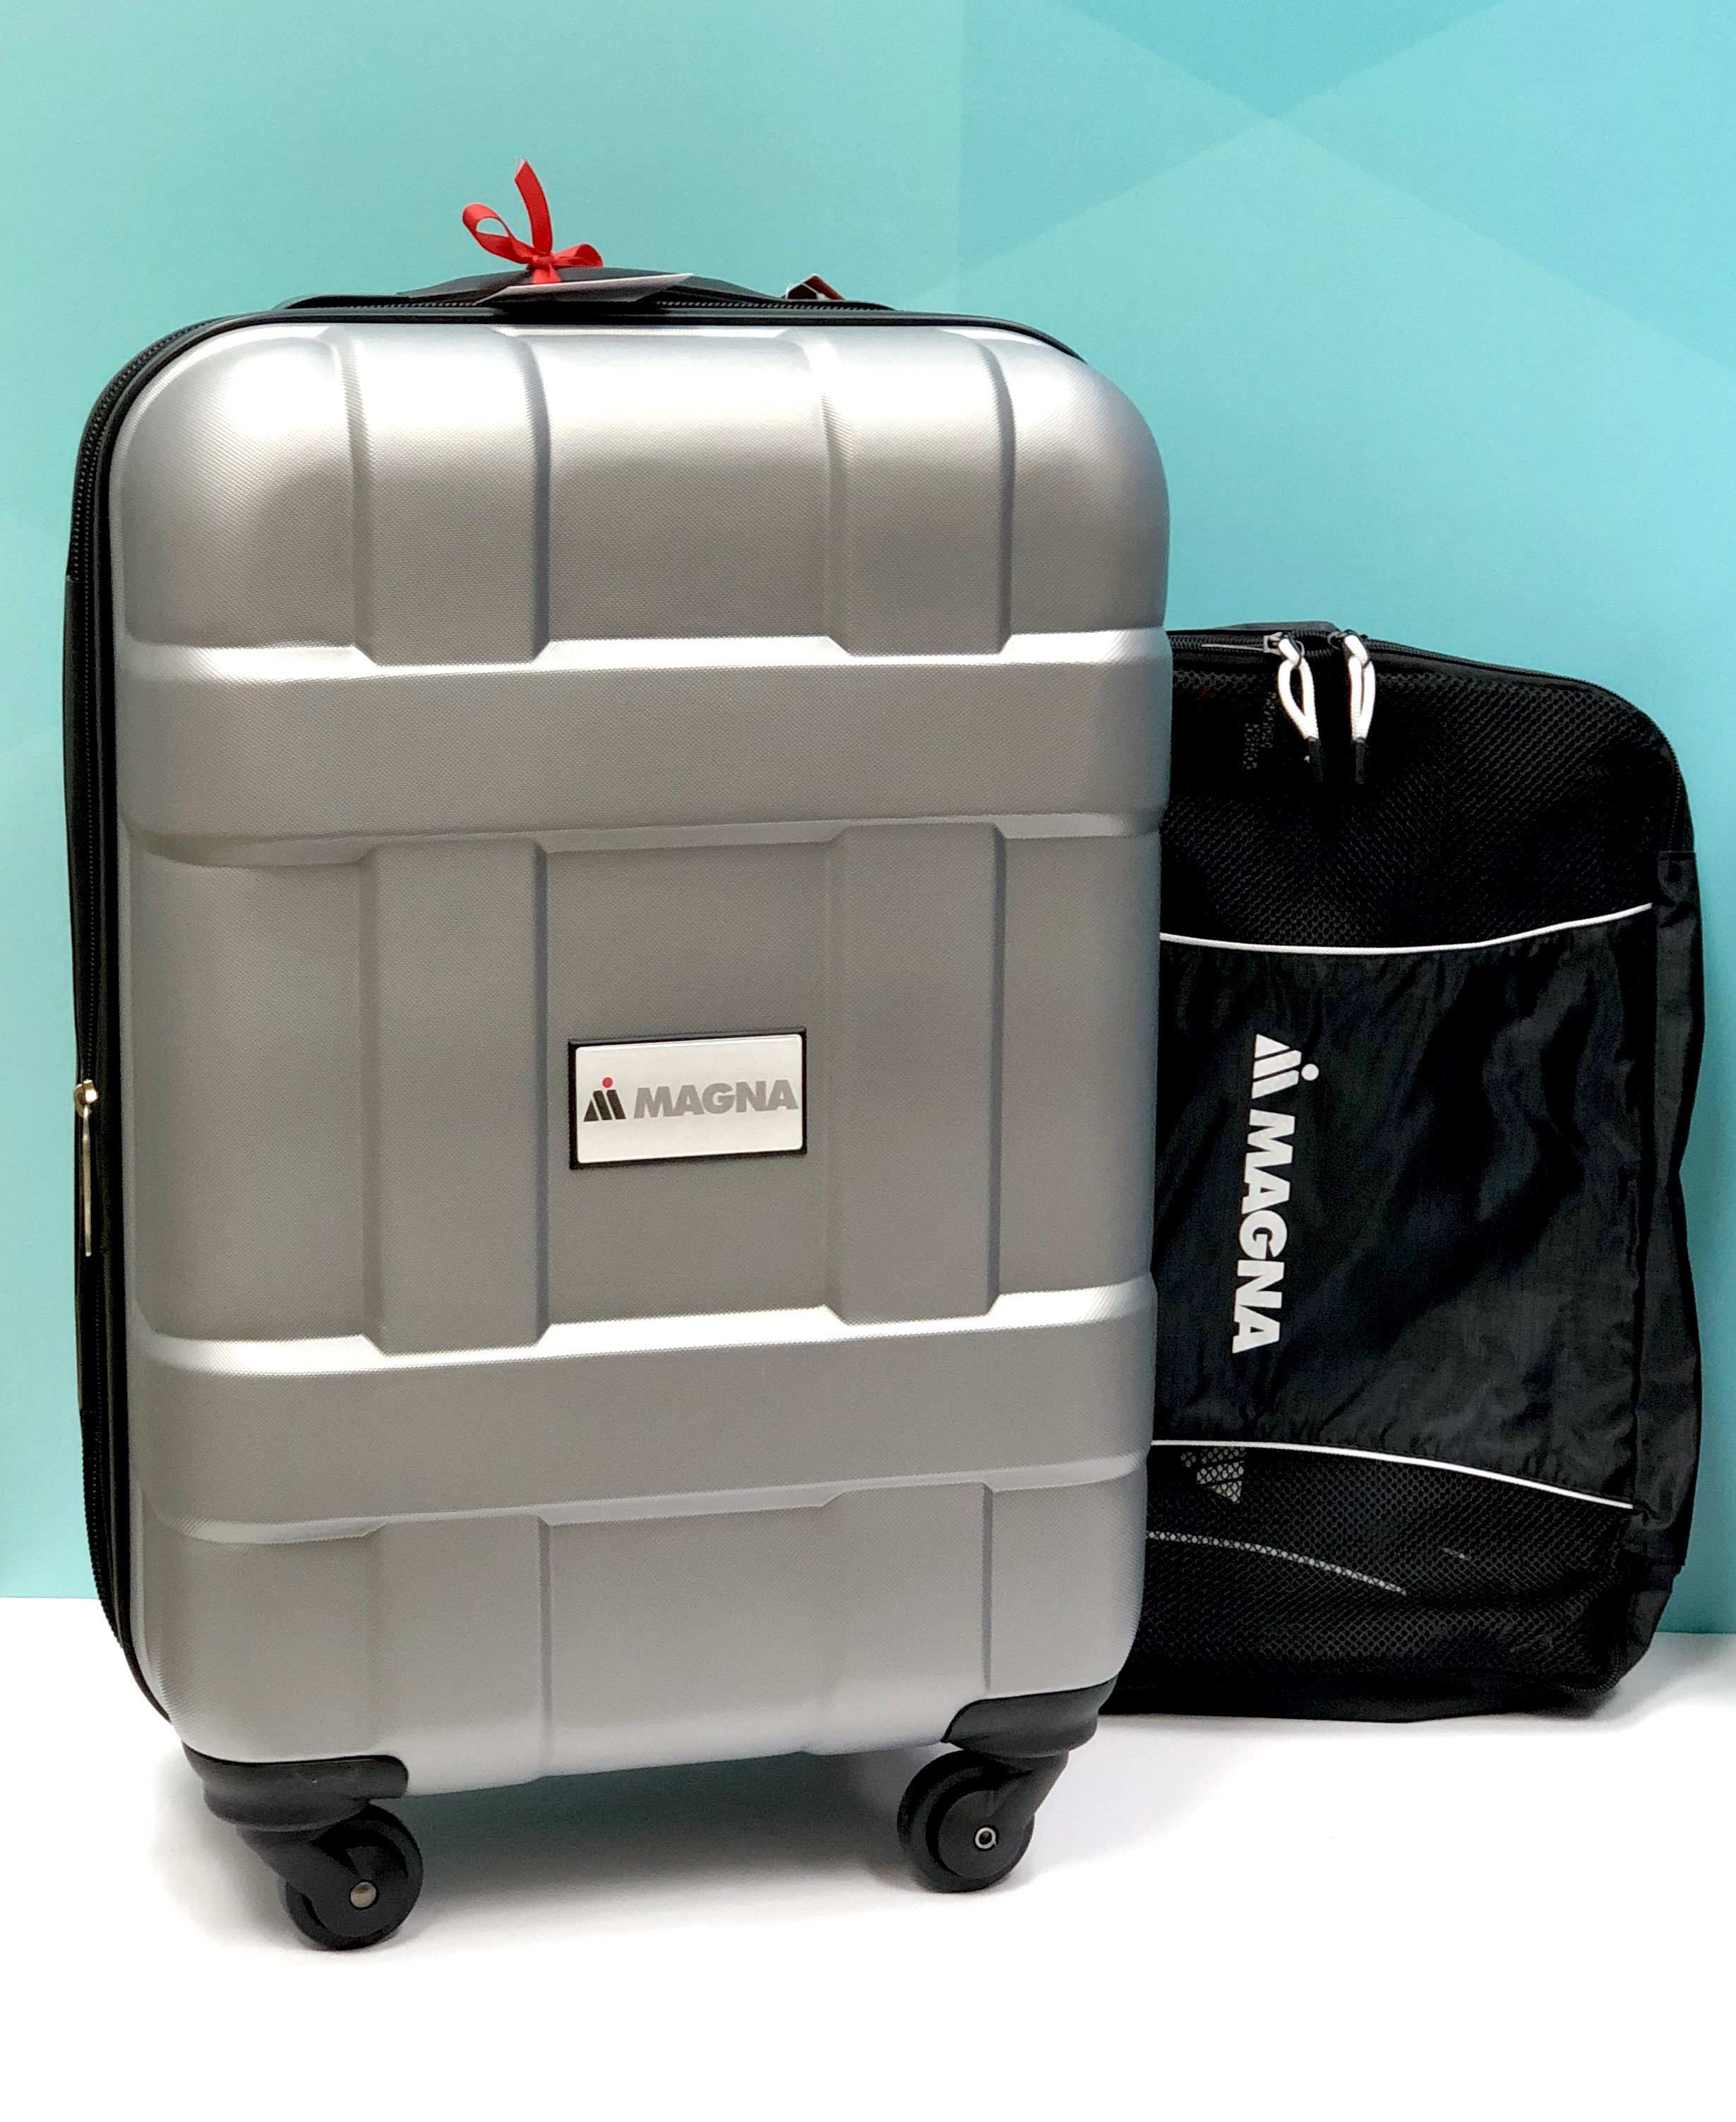 Magna luggage gift